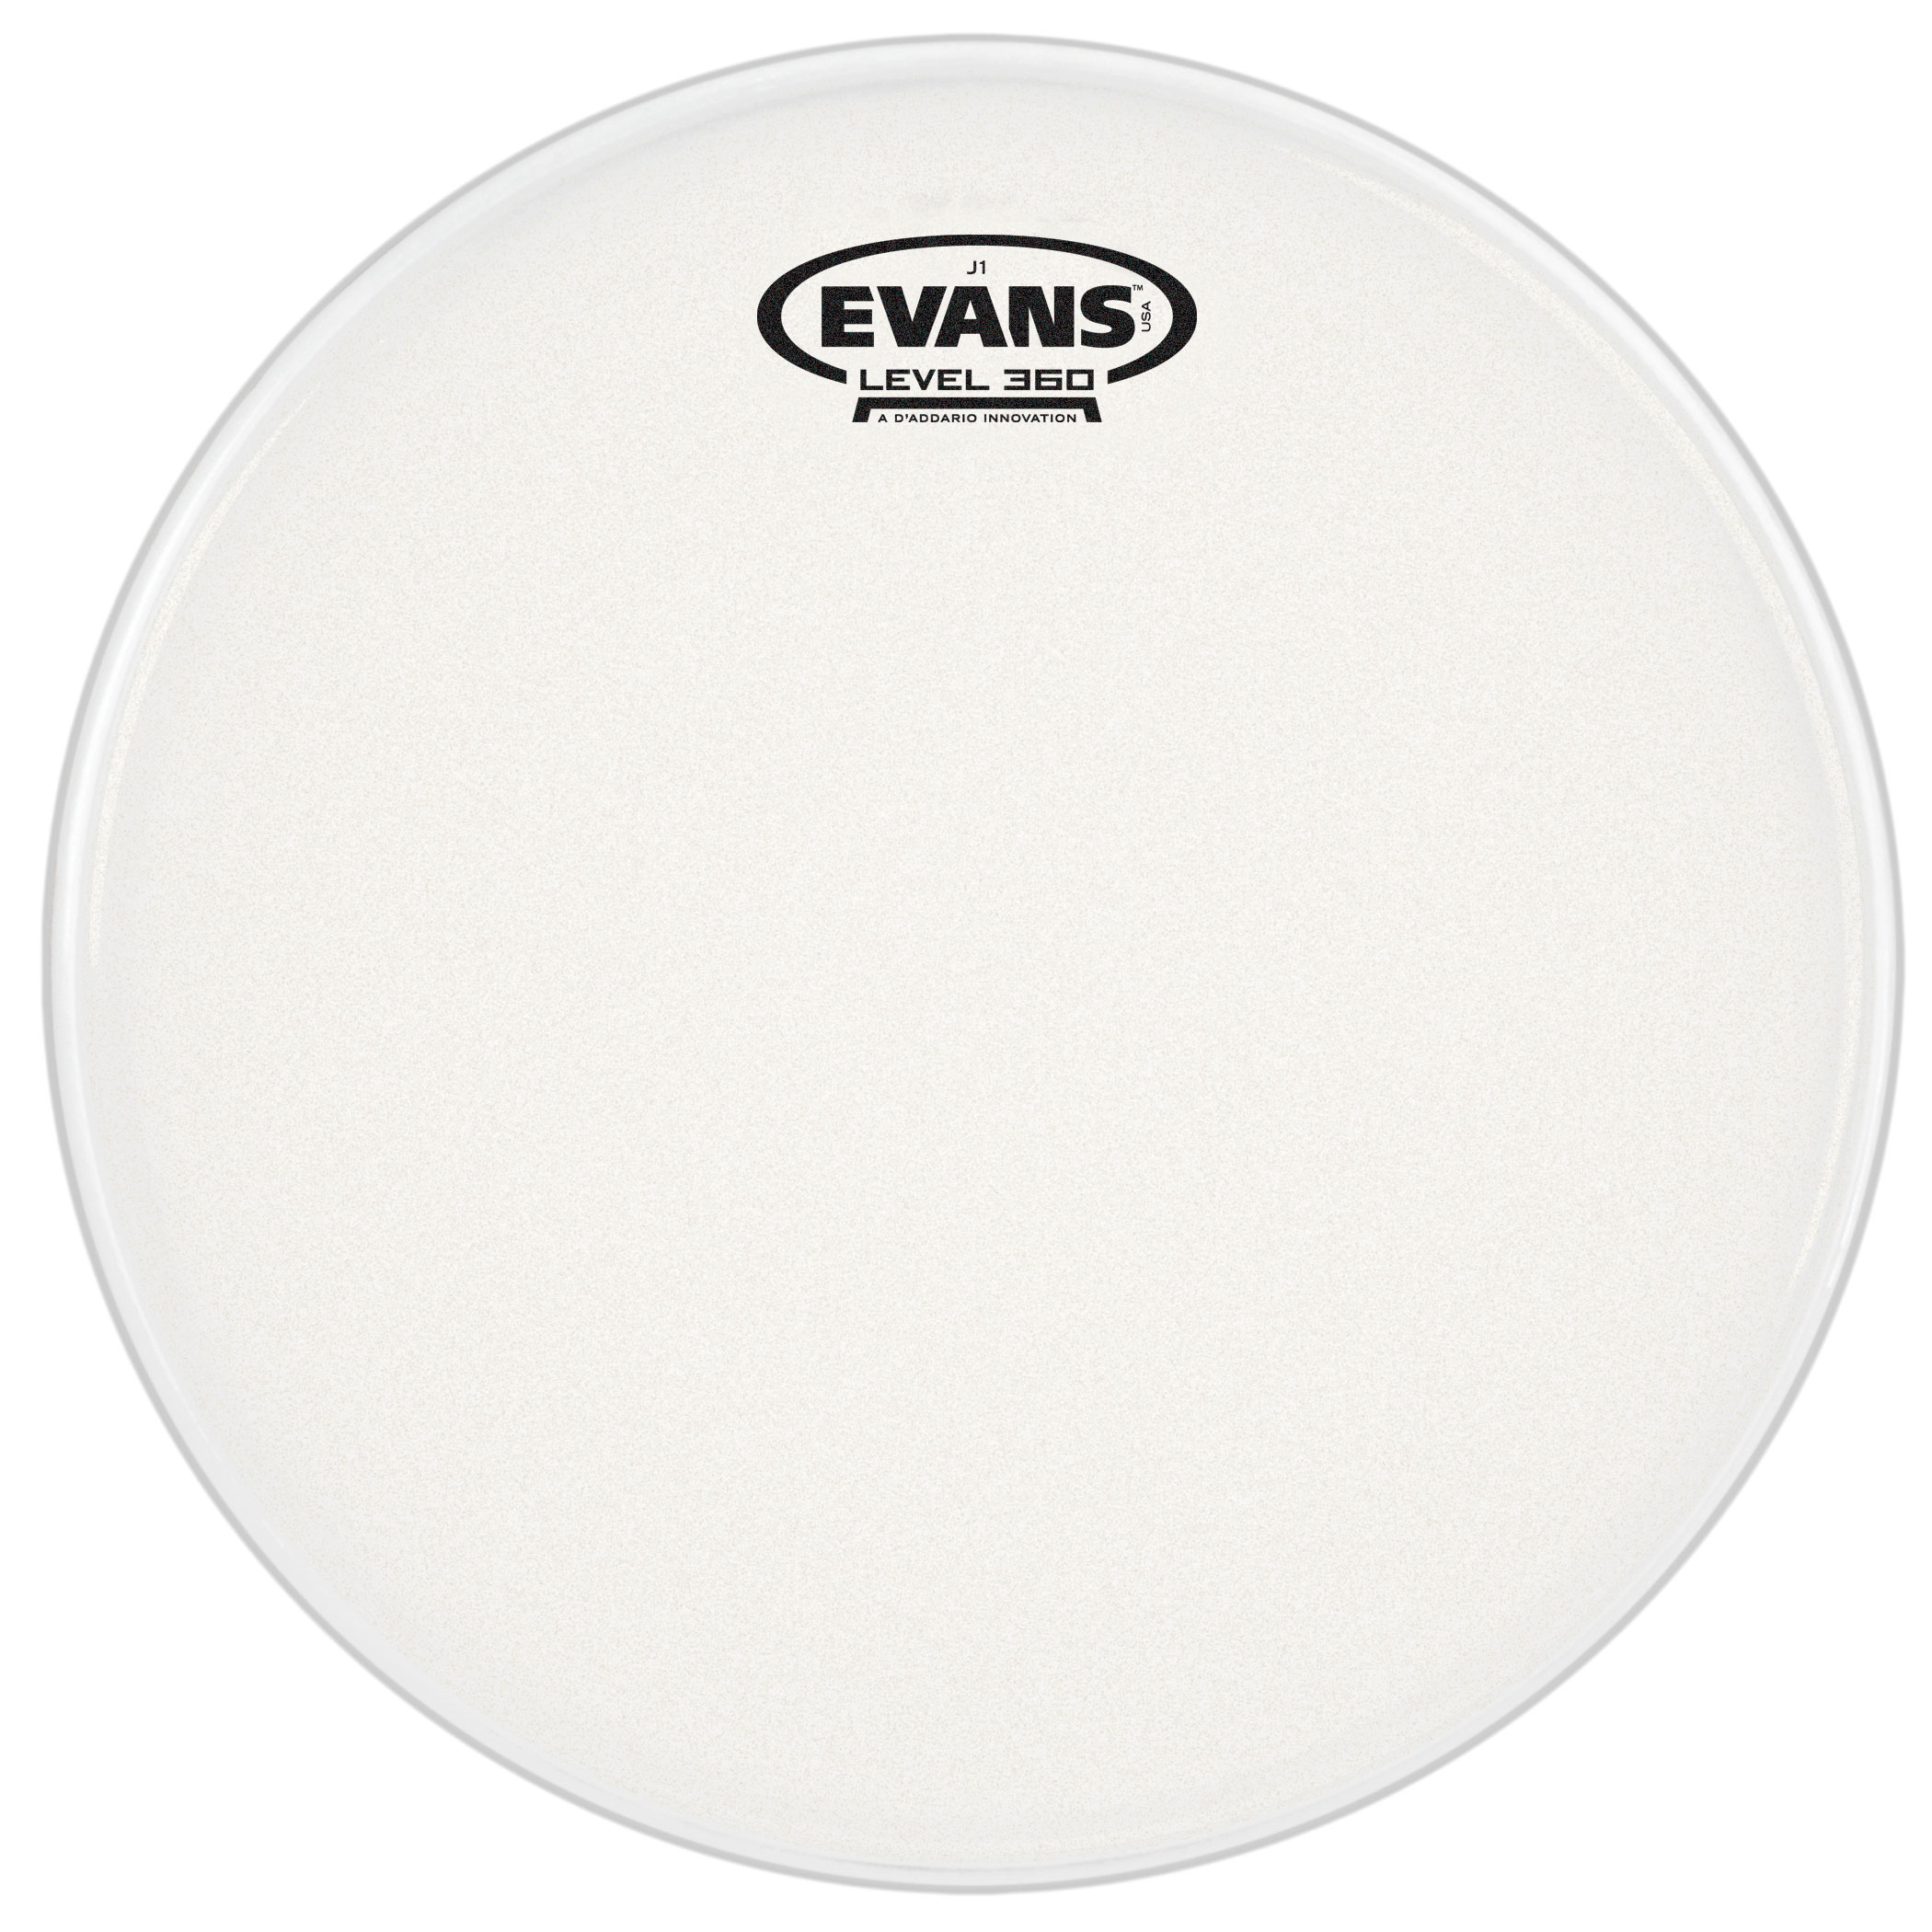 "Evans 15"" J1 Etched Head"